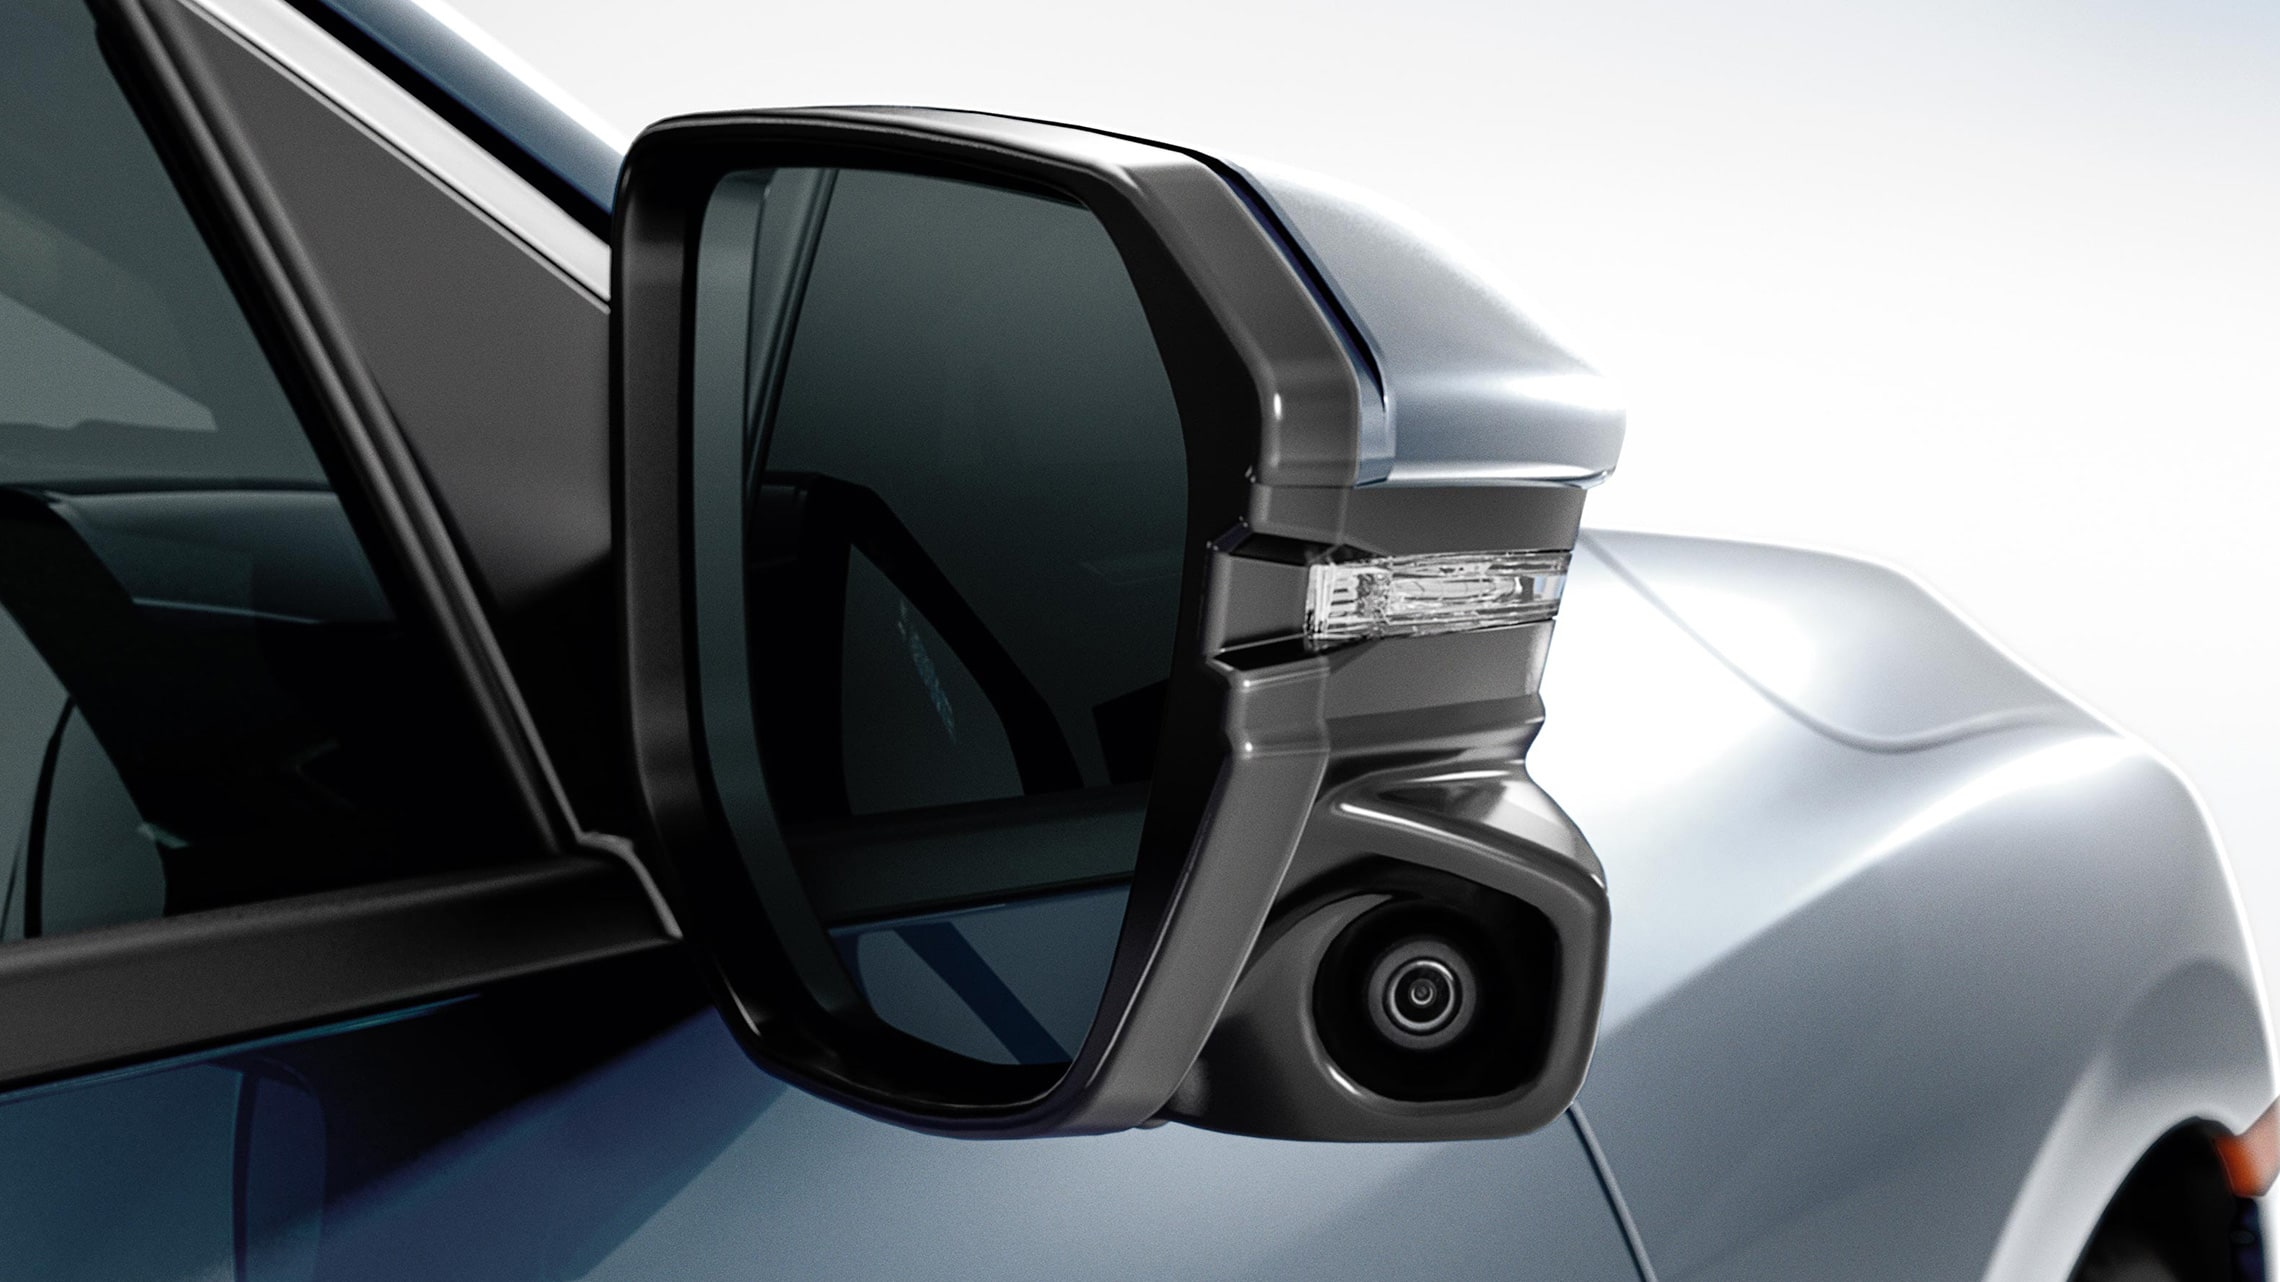 Honda LaneWatch™ camera detail on passenger-side mirror on the 2021 Honda Civic Touring Sedan in Cosmic Blue Metallic.